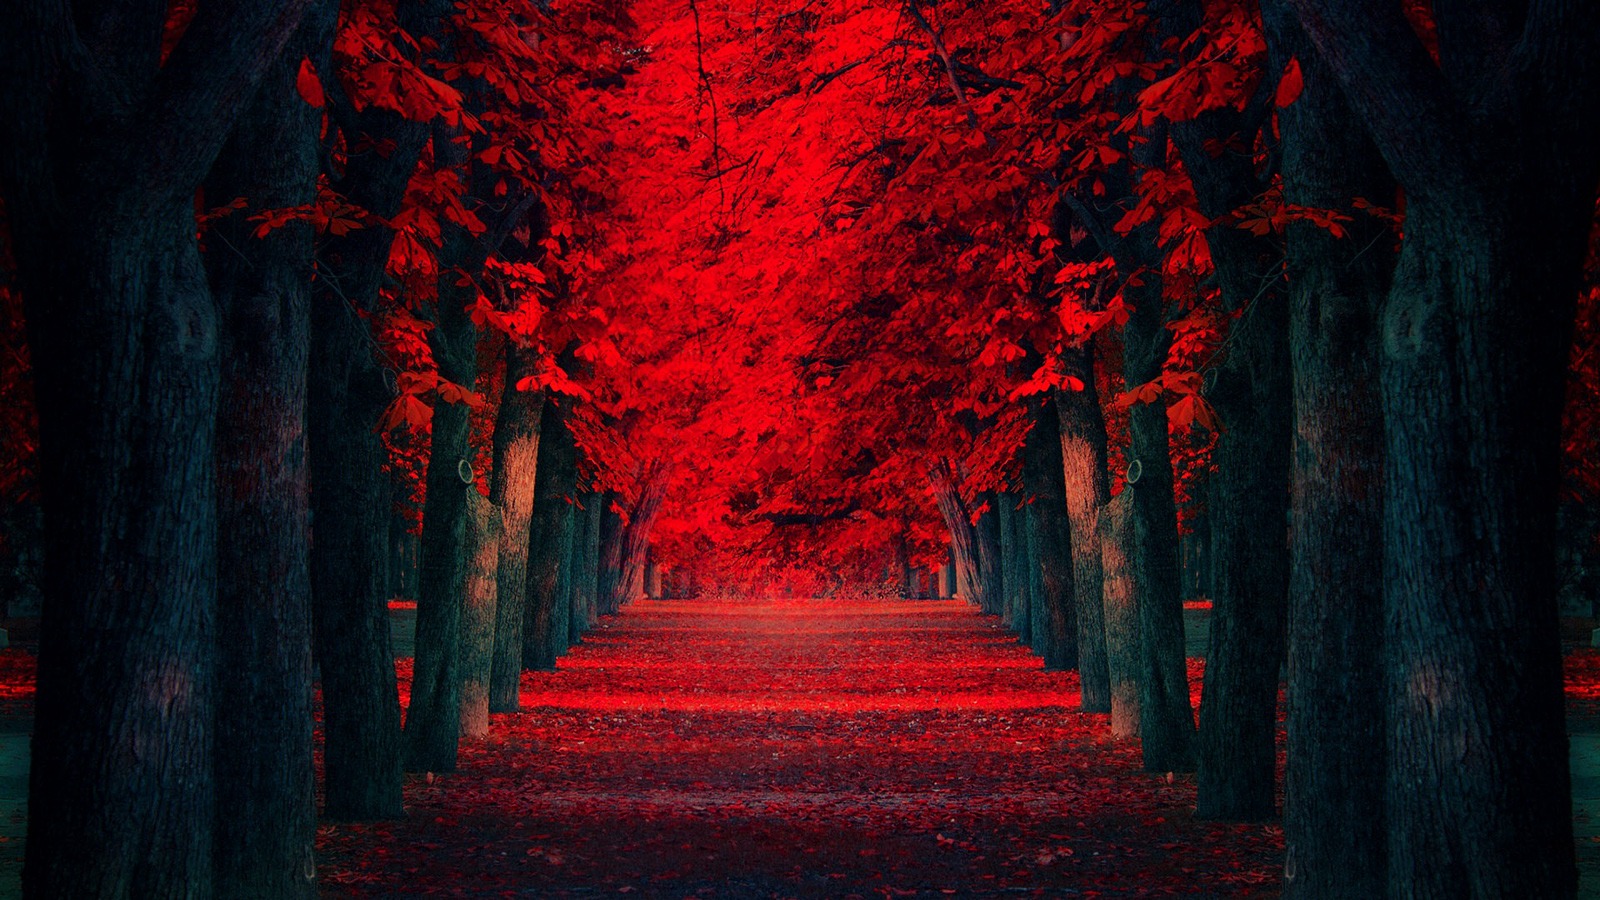 http://1.bp.blogspot.com/-l35rW84Hb0k/ULu9T8xkbaI/AAAAAAAAGe4/bUIFMXEmvks/s1600/Red-Leaves-Covered-Road-HD-Wallpaper_Vvallpaper.Net.jpg